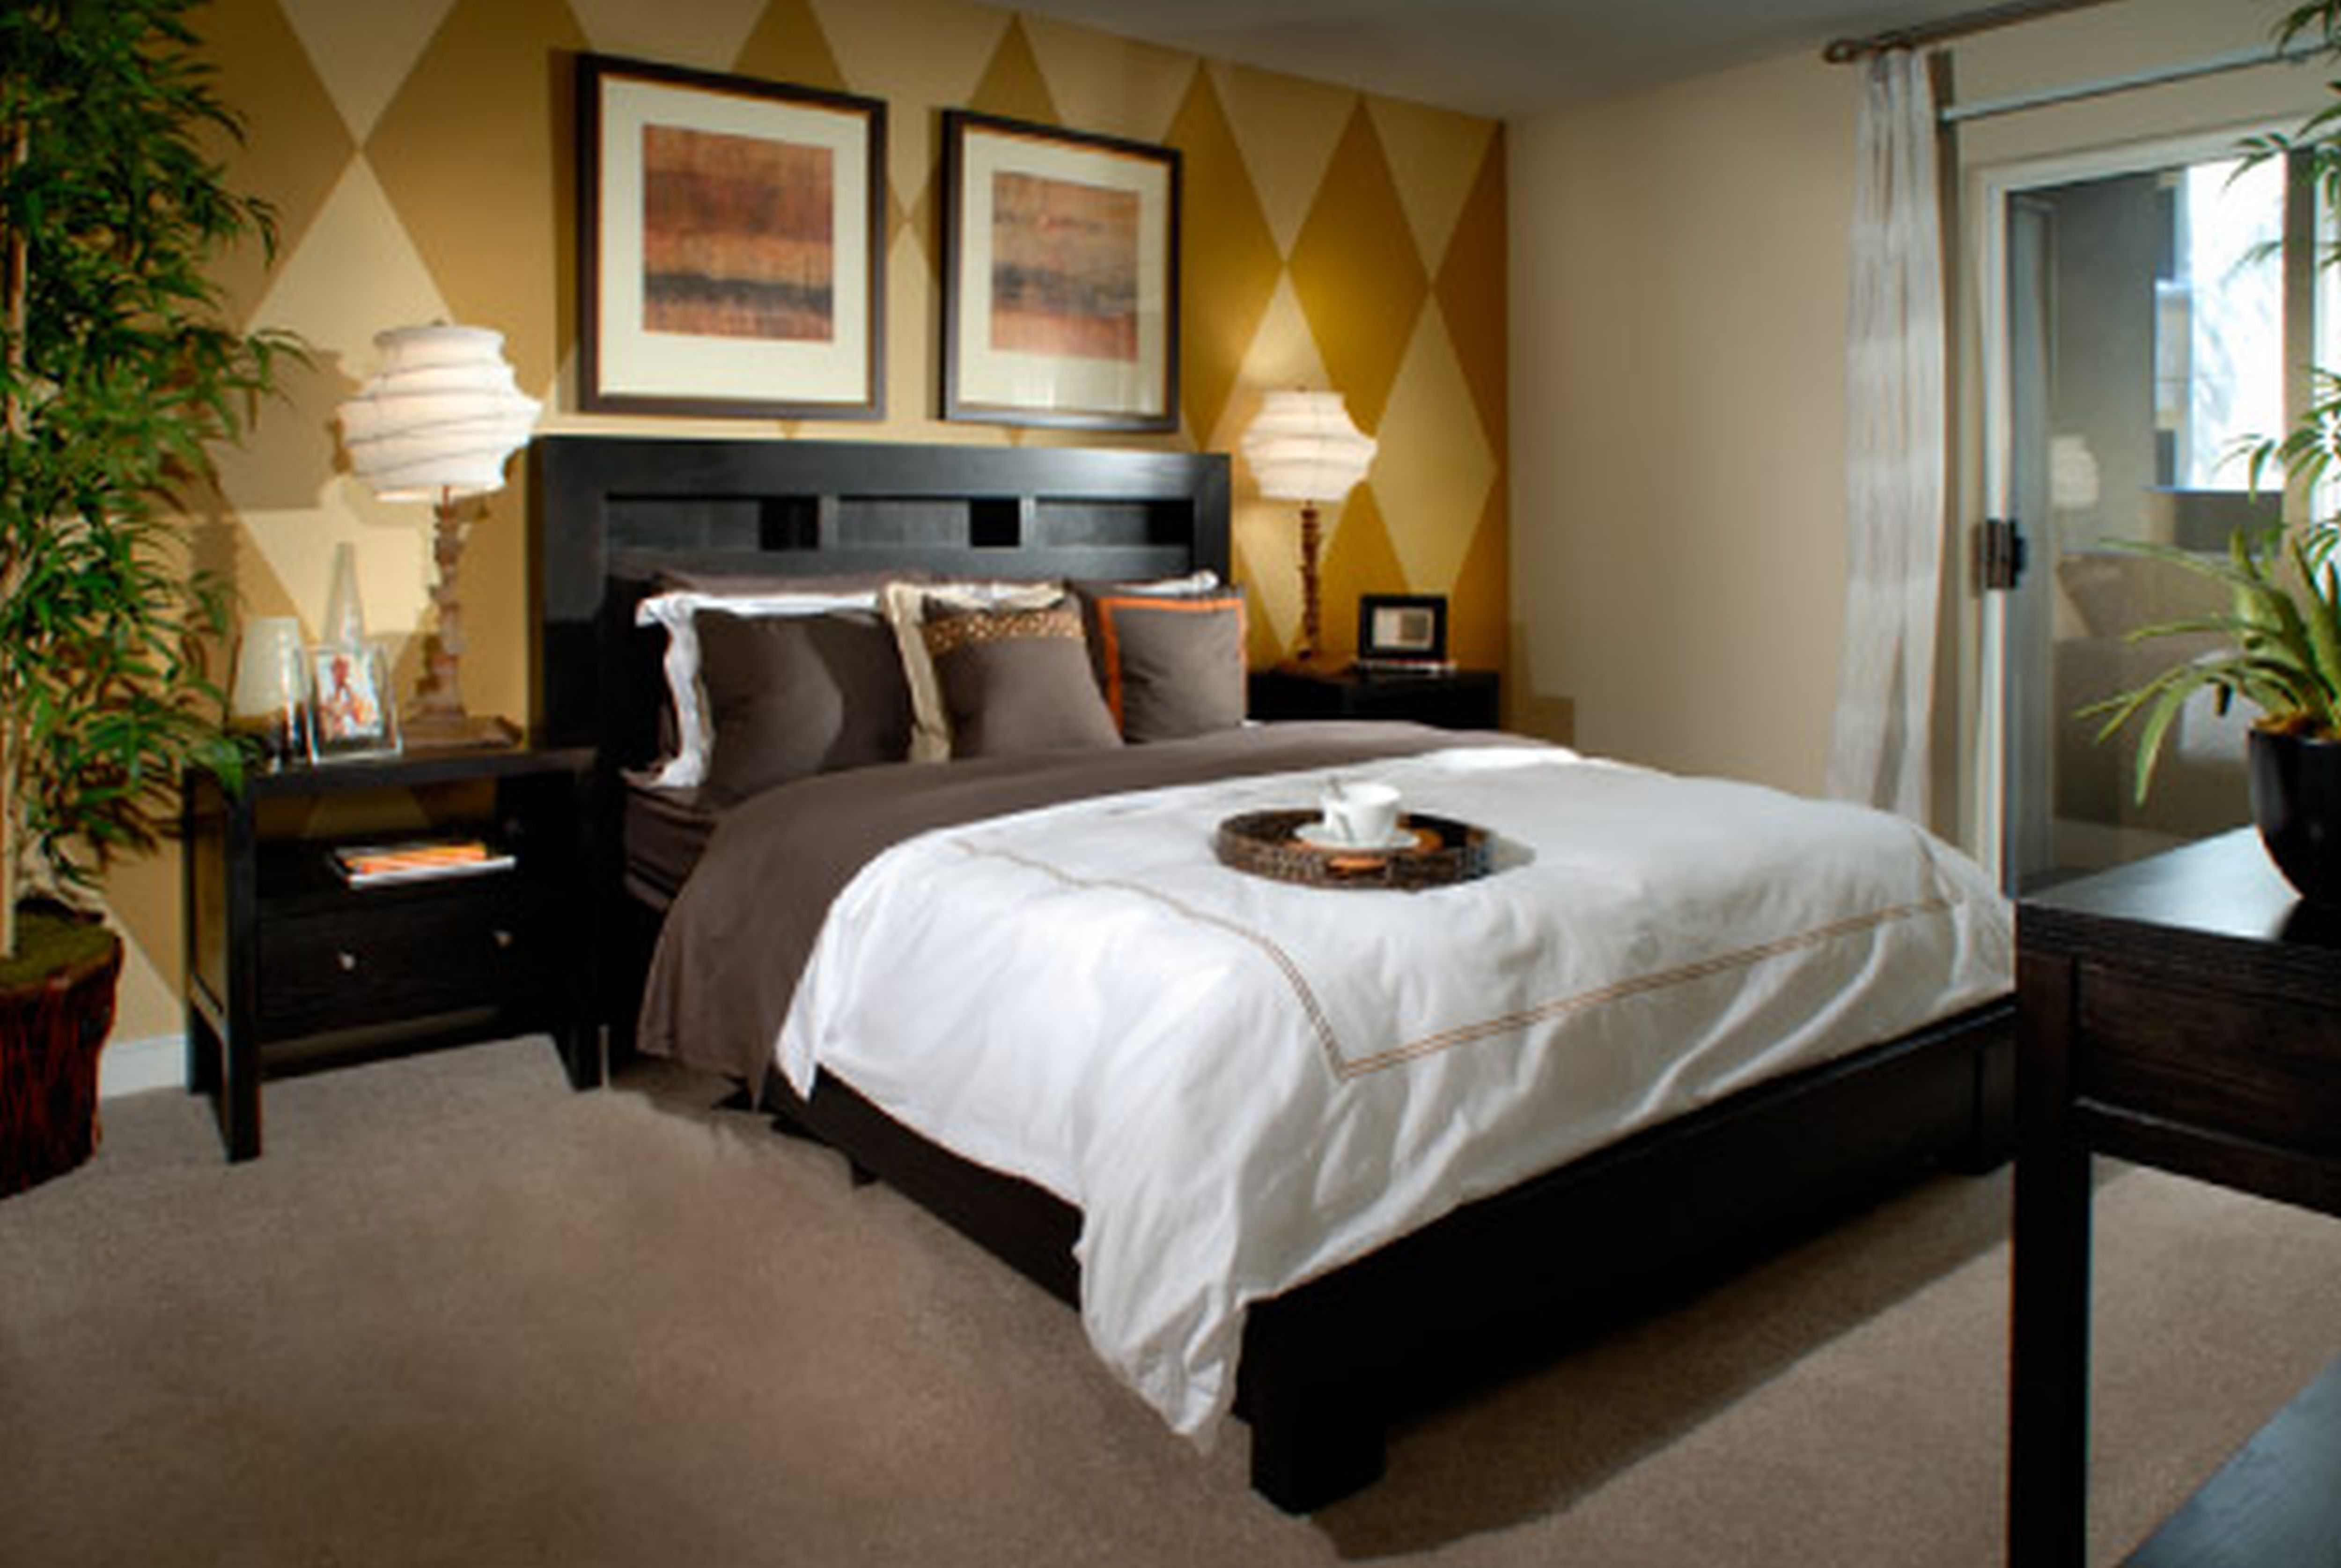 bed-room-decorated-inner-side-pictures-bedroom.